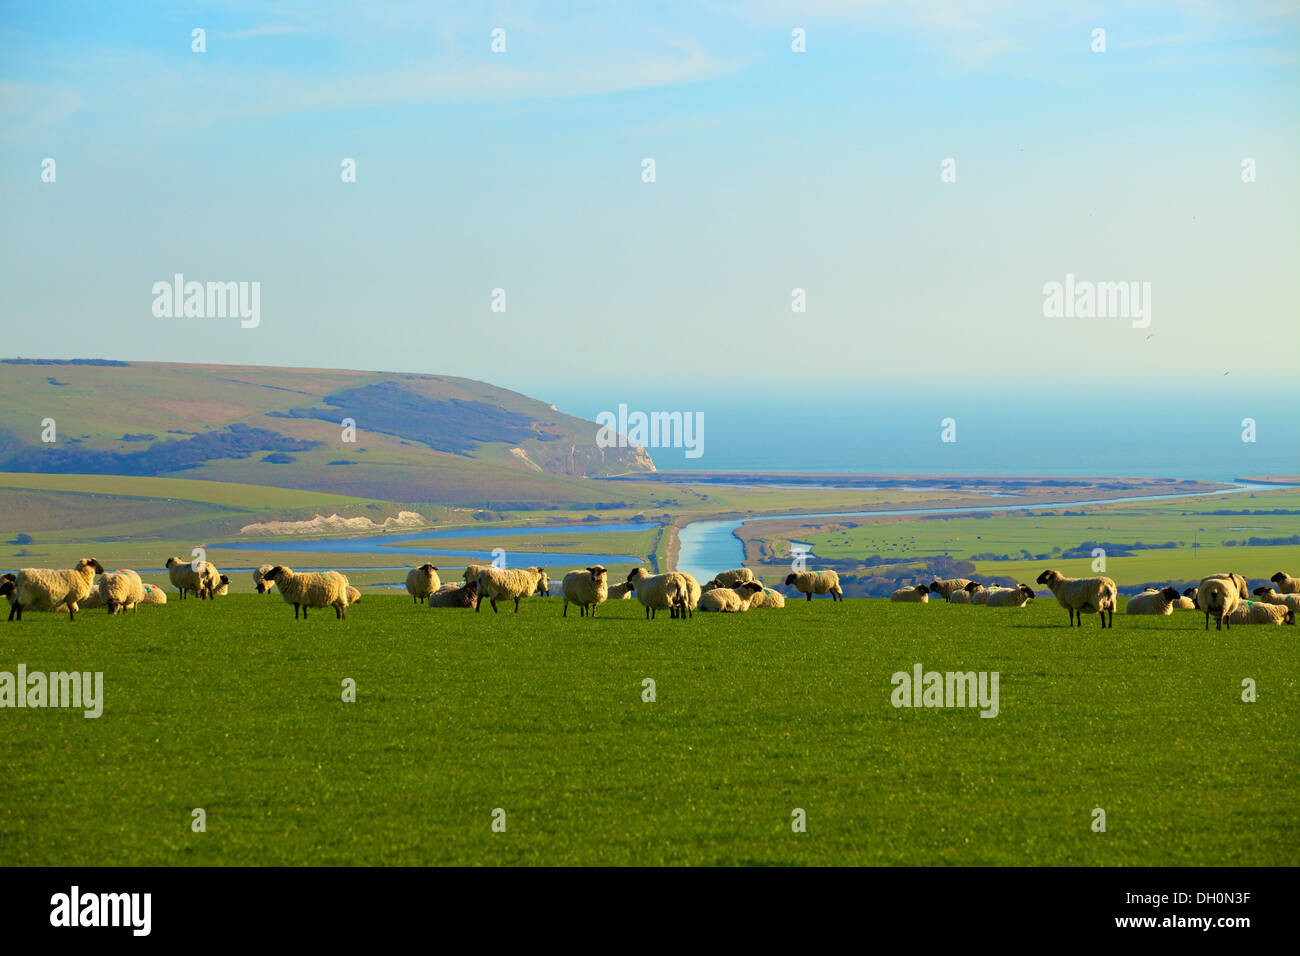 Sheep overlooking Cuckmere Haven, East Sussex, England, UK, Europe. Stock Photo